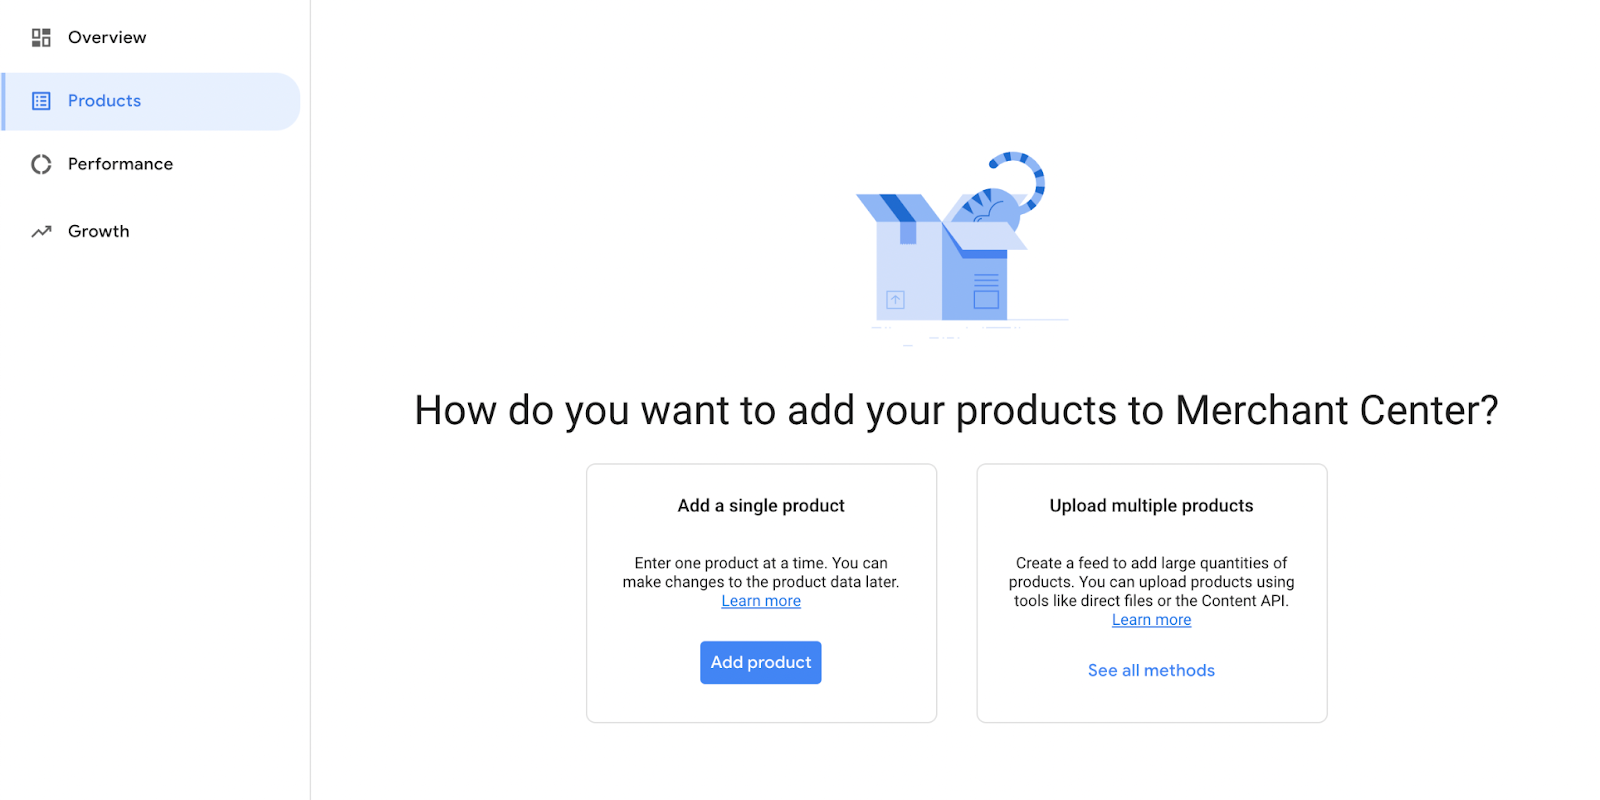 Add a single product or upload multiple products.